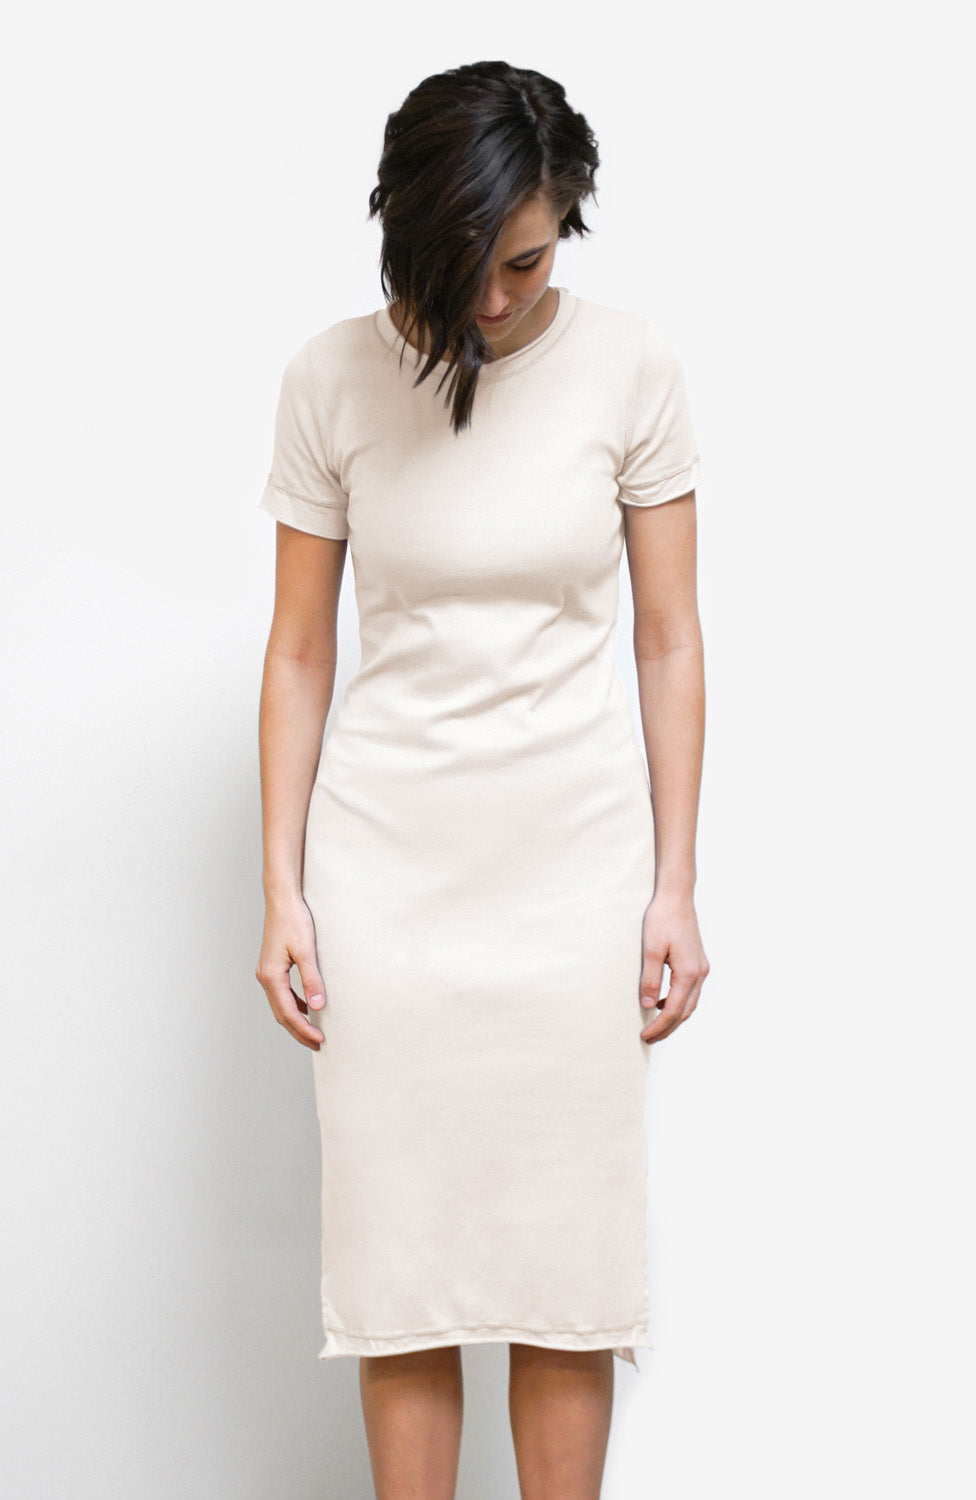 Alabama Chanin Organic Cotton Rib Dress in Natural with Short Sleeve Styled on Model